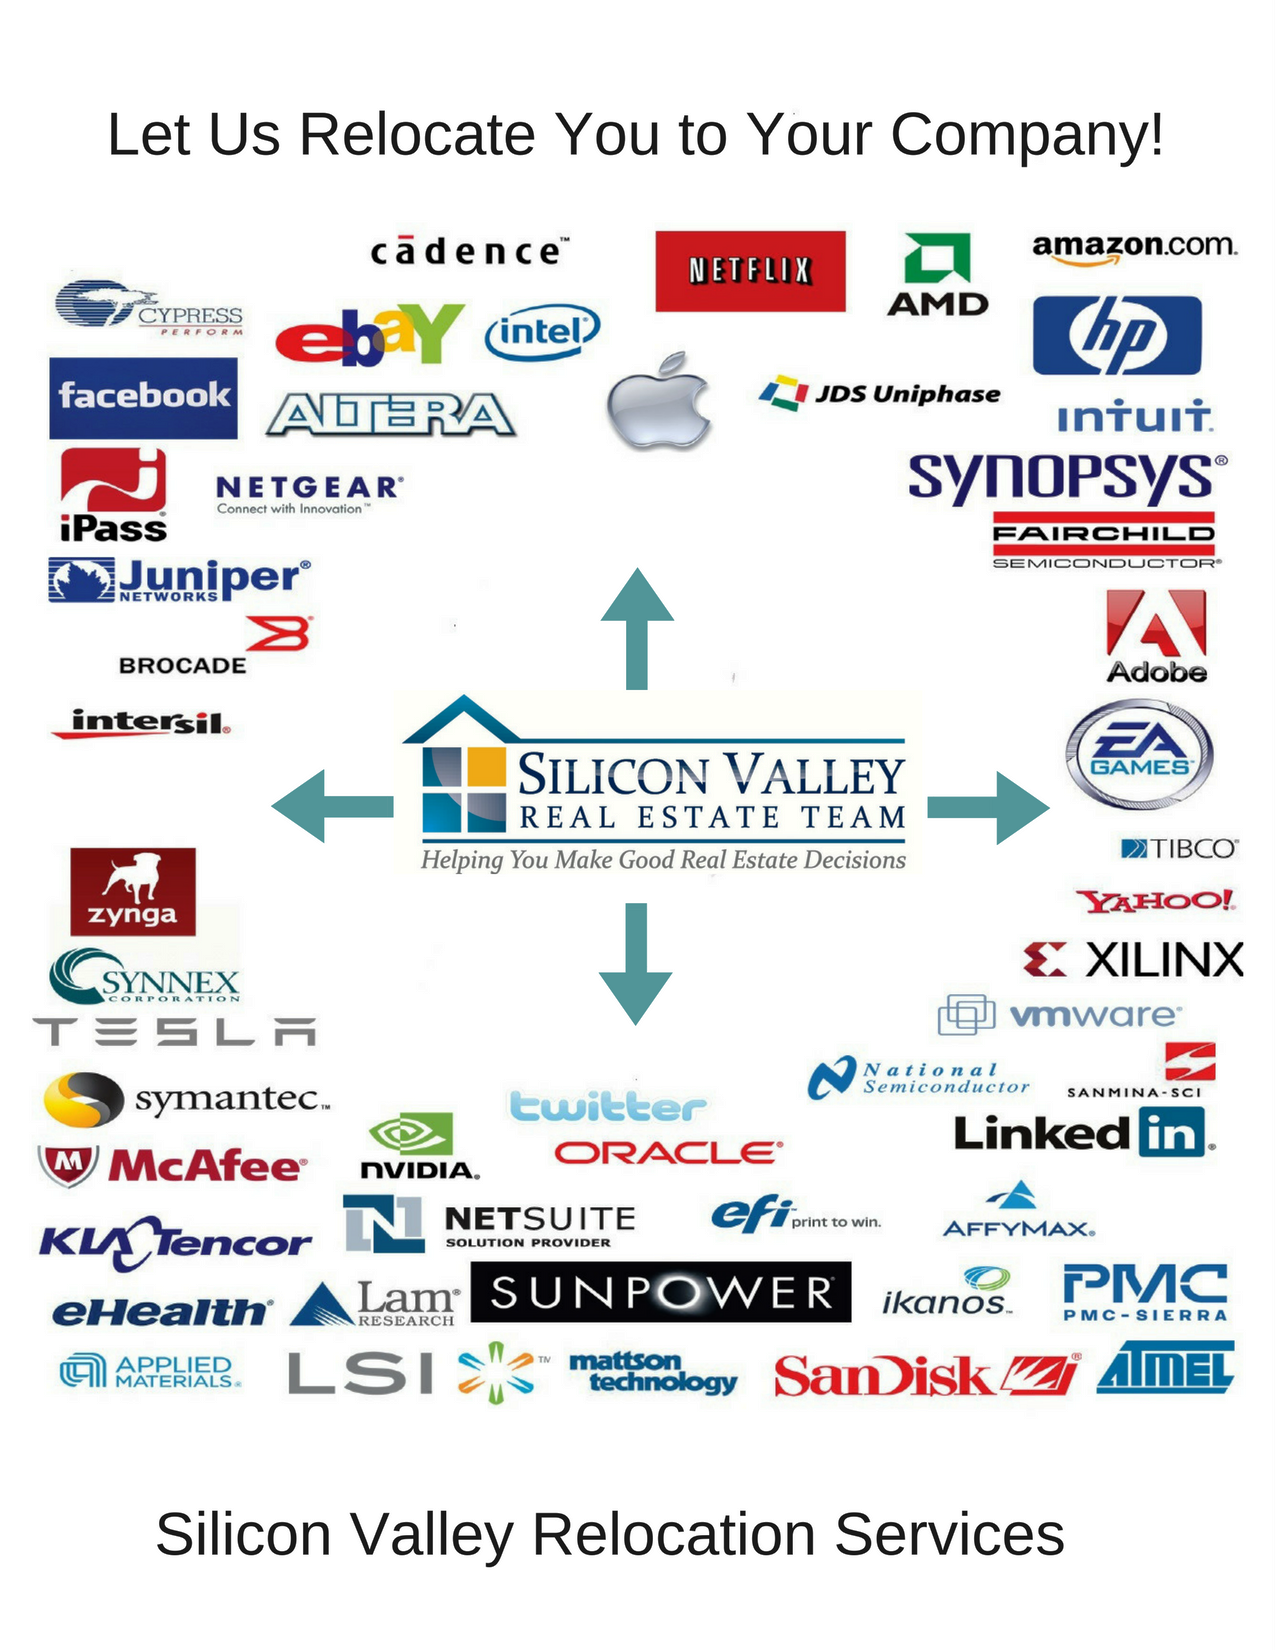 Silicon Valley Relocation Services | Corporate Relocation Assistance